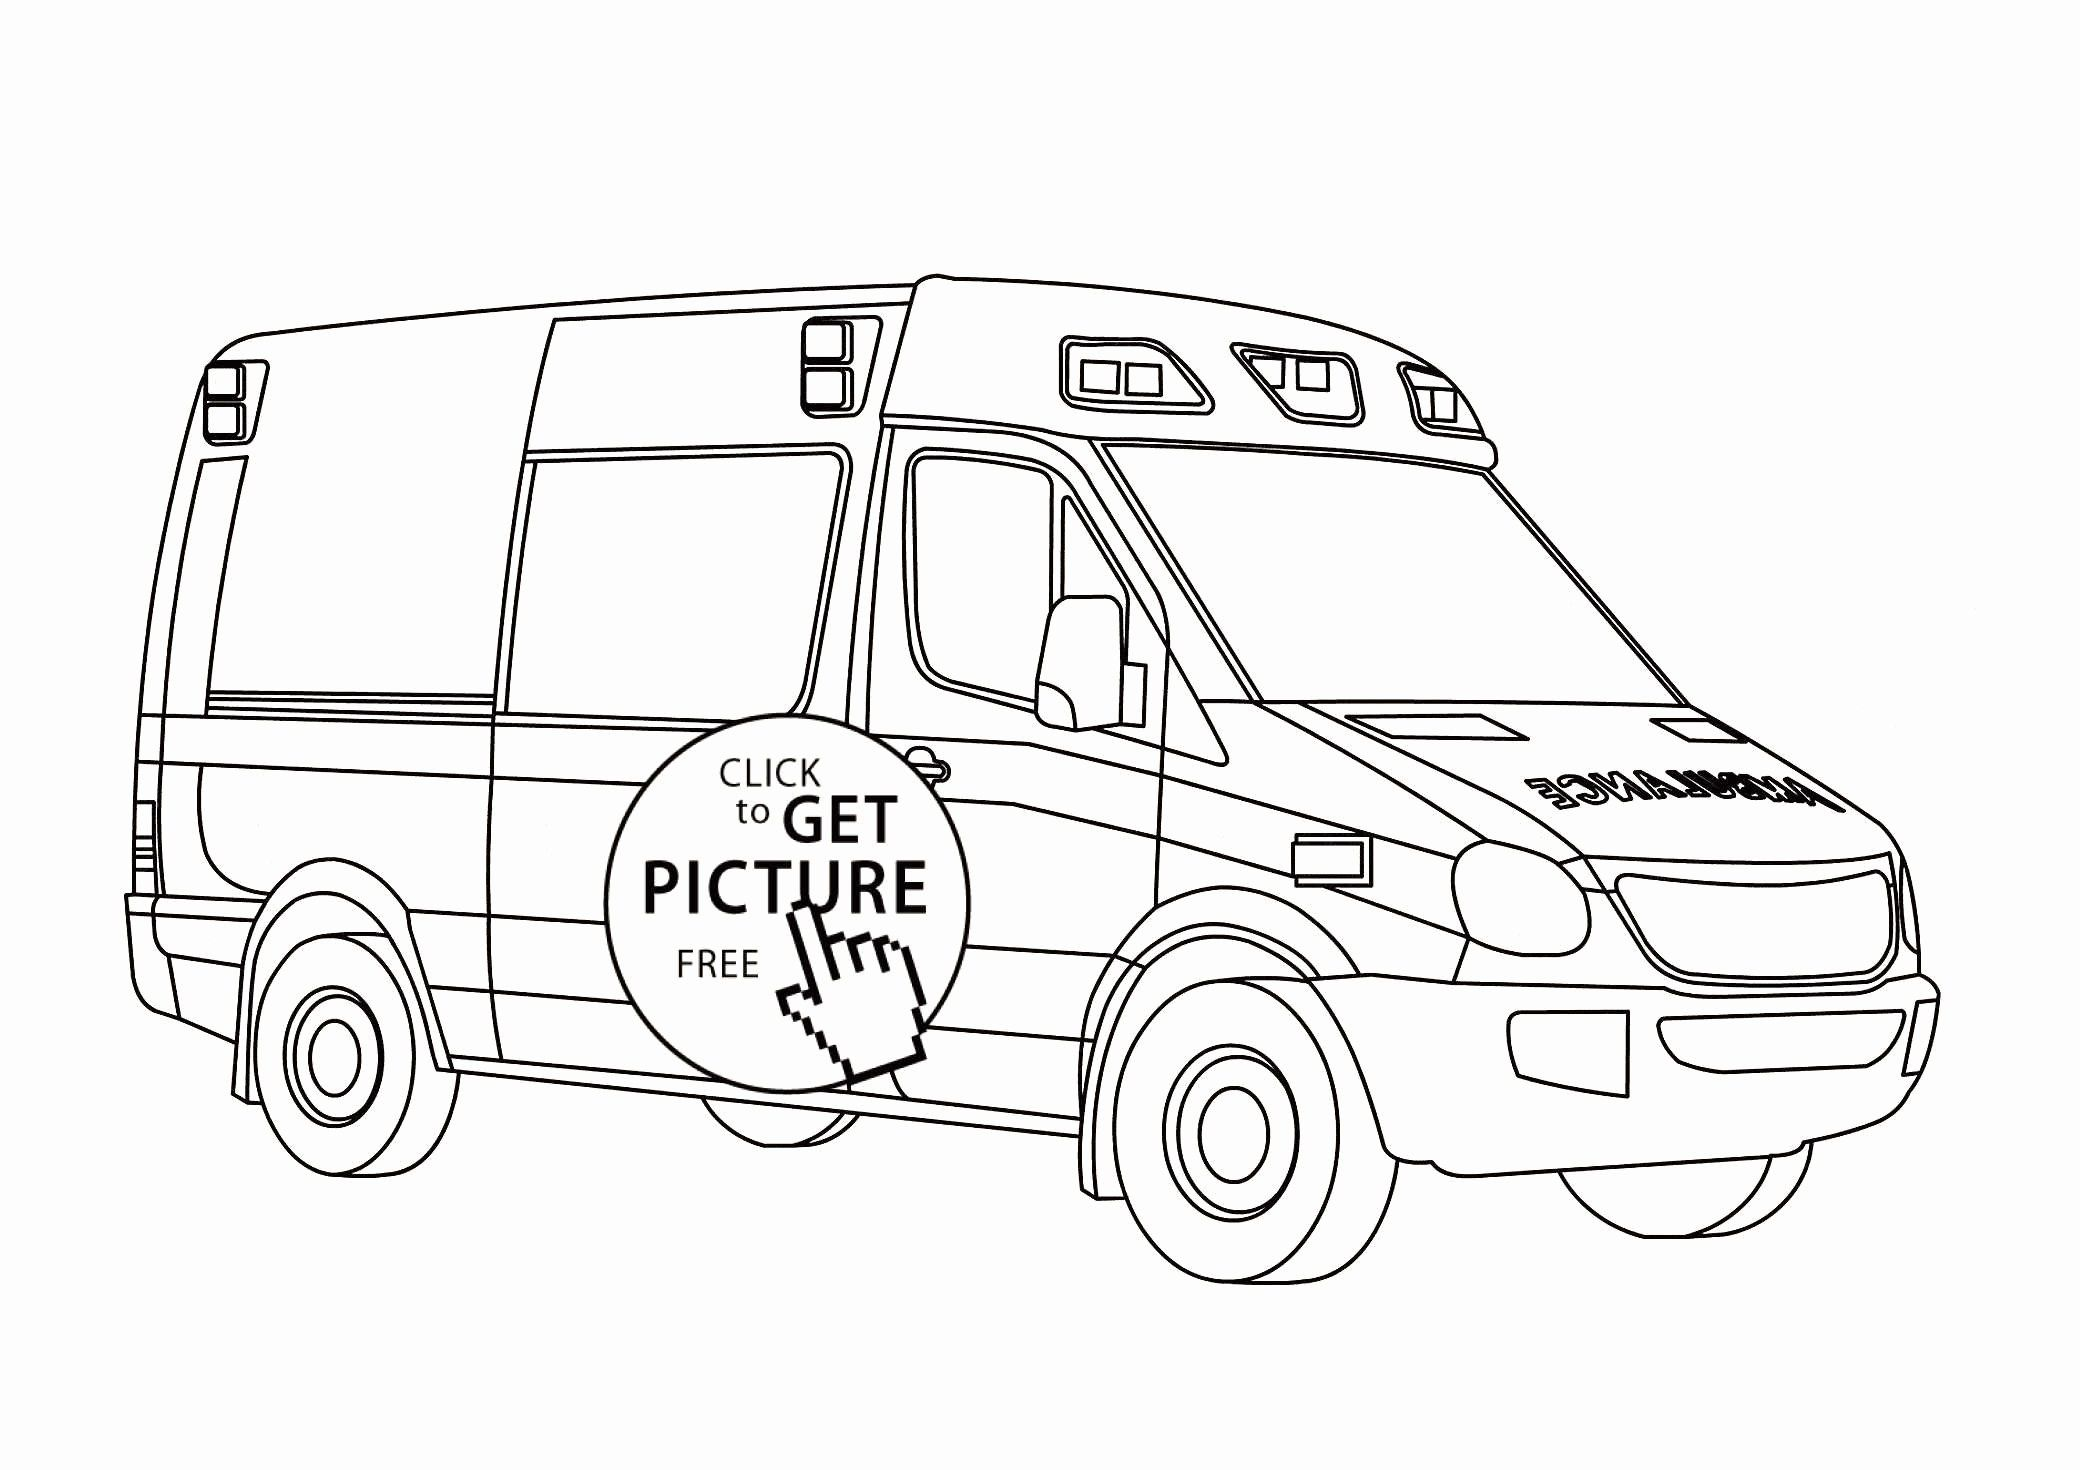 Recycling Truck Coloring Page New Fire Truck To Color Unique Cars And Trucks Coloring Truck Coloring Pages Cars Coloring Pages Printable Coloring Pages